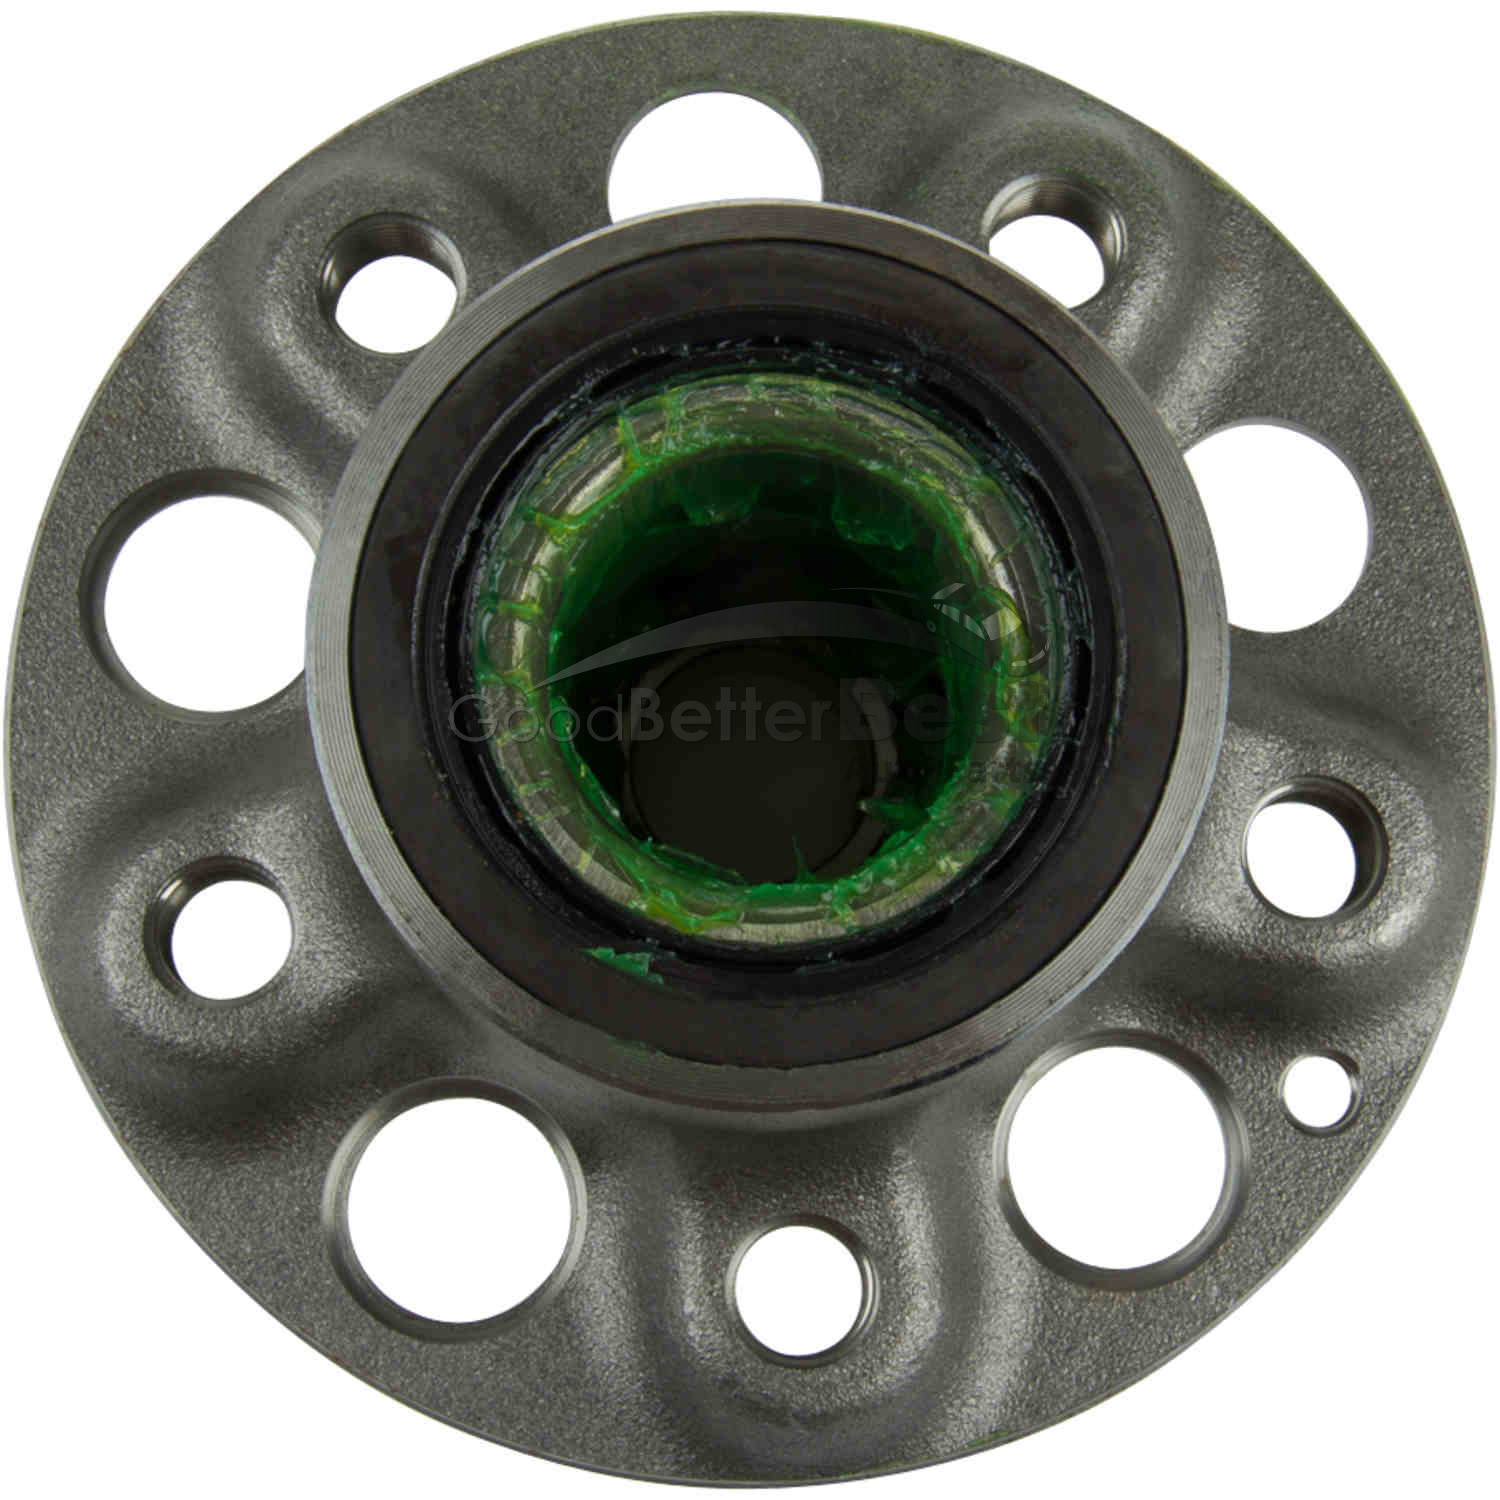 221 330 02 25 Wheel Hub Assembly GENUINE MERCEDES WITH BEARINGS